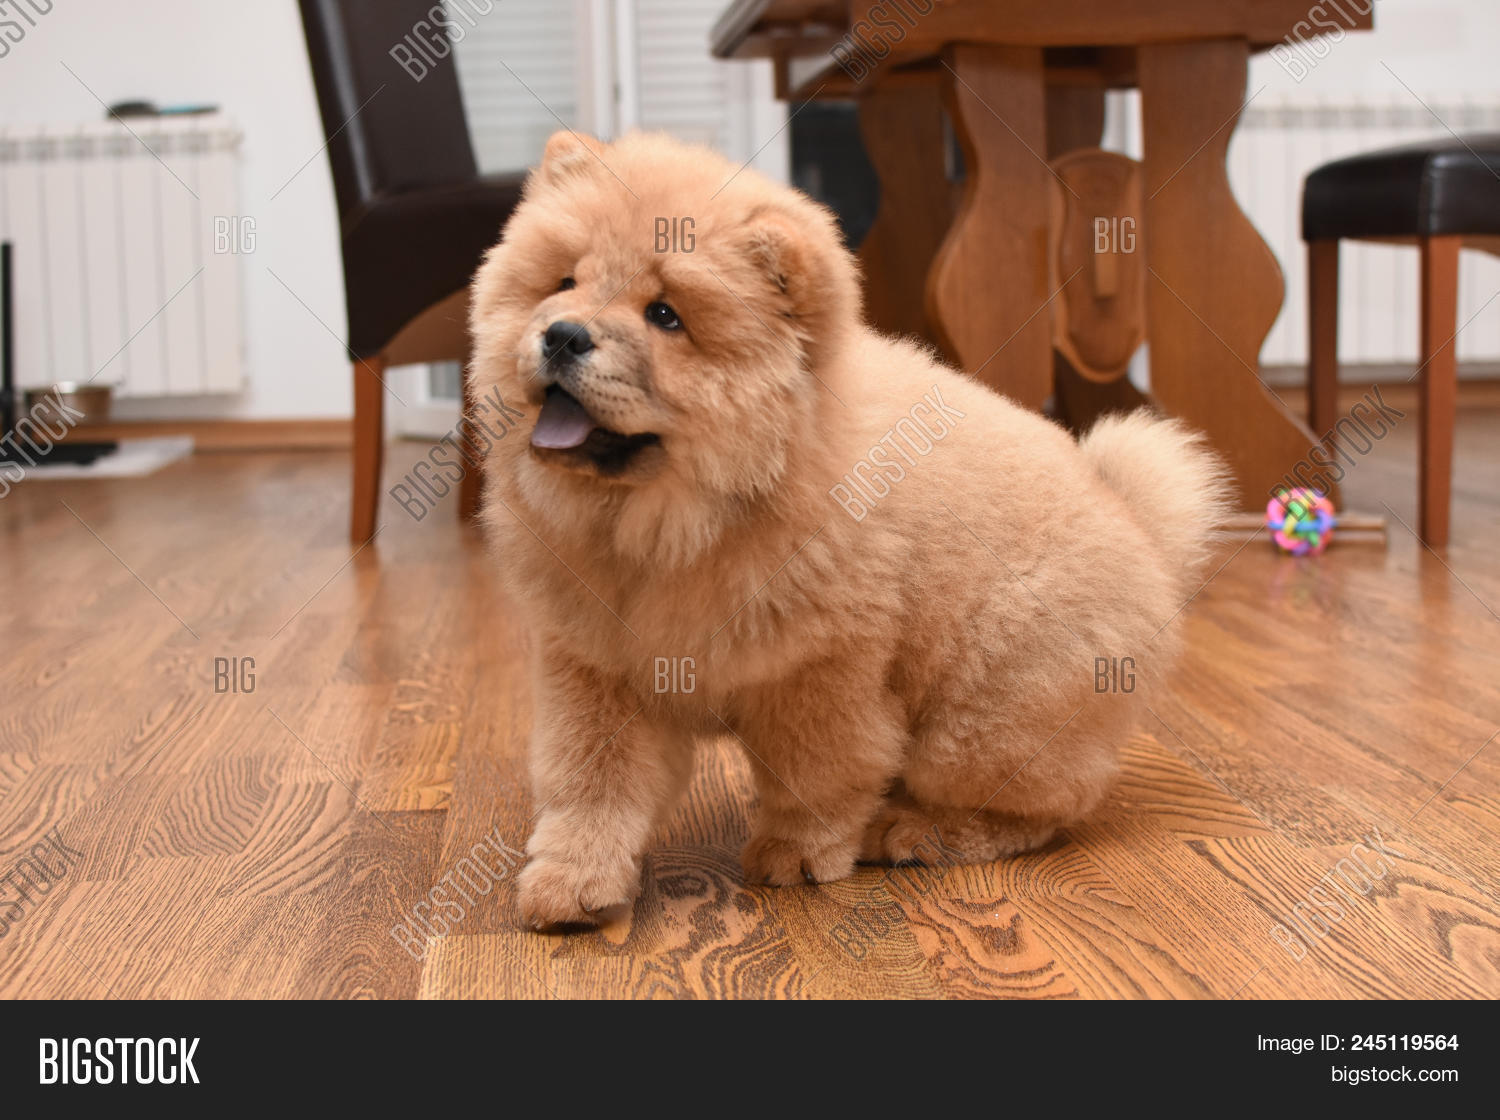 Chow Chow Puppy House Image & Photo (Free Trial) | Bigstock